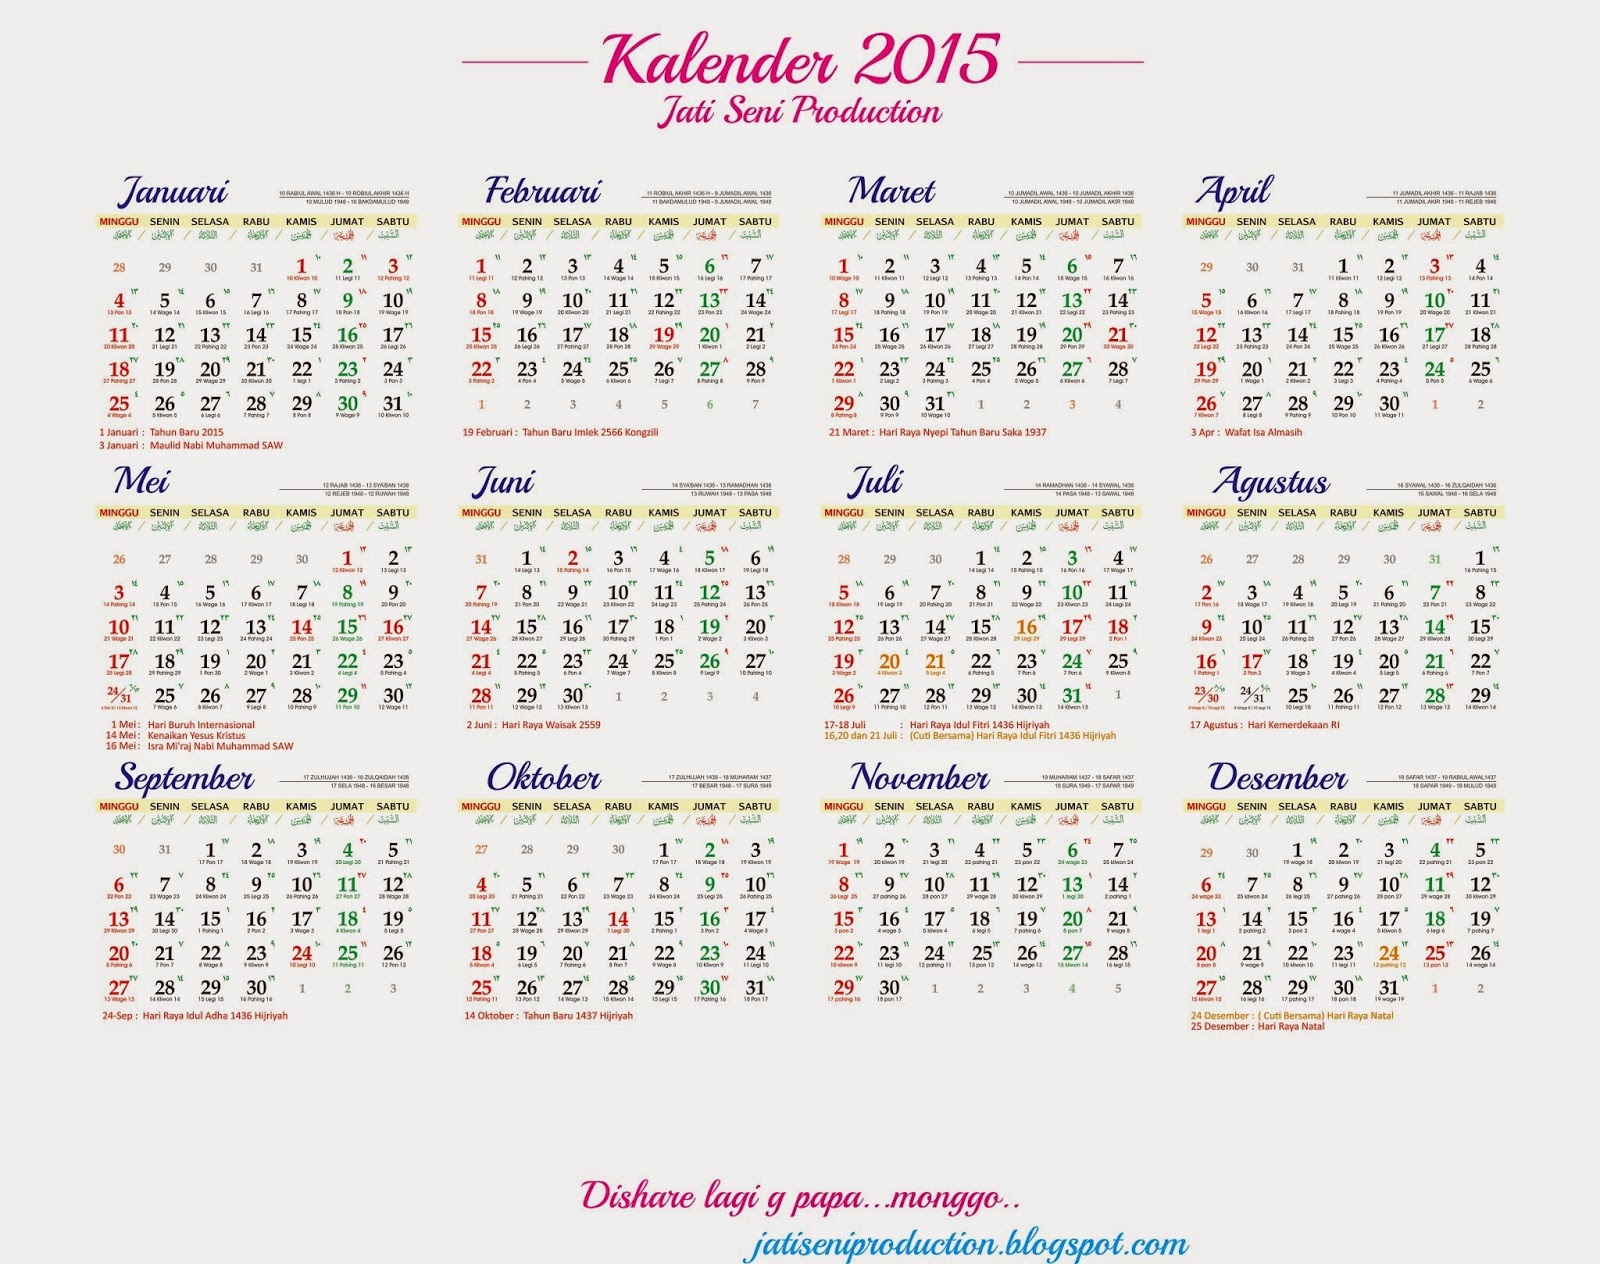 Kalender 2015 Lengkap Related Keywords & Suggestions - Kalender 2015 ...